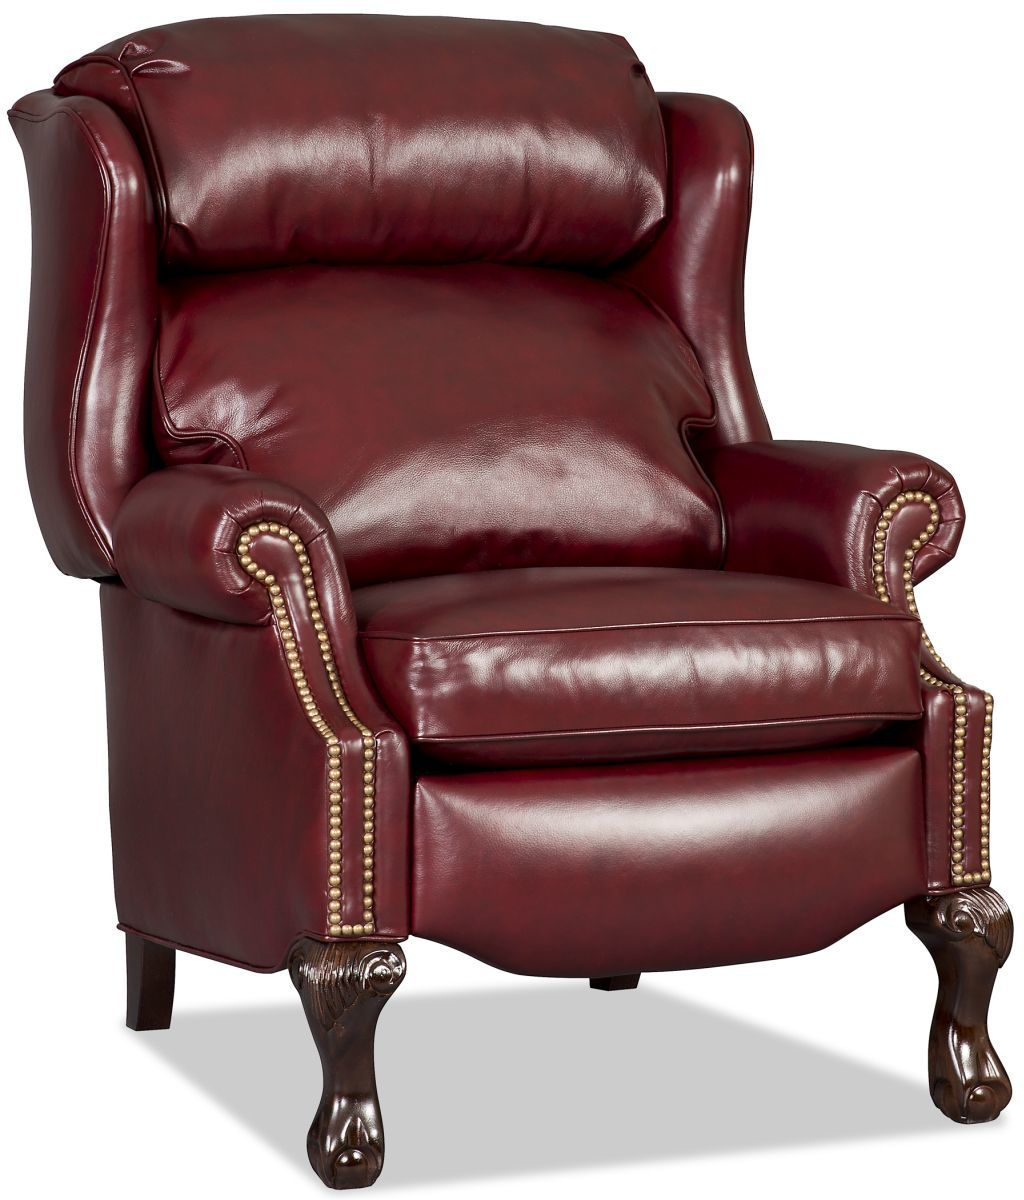 Pleasing Bradington Young 4115 Ball Claw Recliner 3 Color Special Pdpeps Interior Chair Design Pdpepsorg